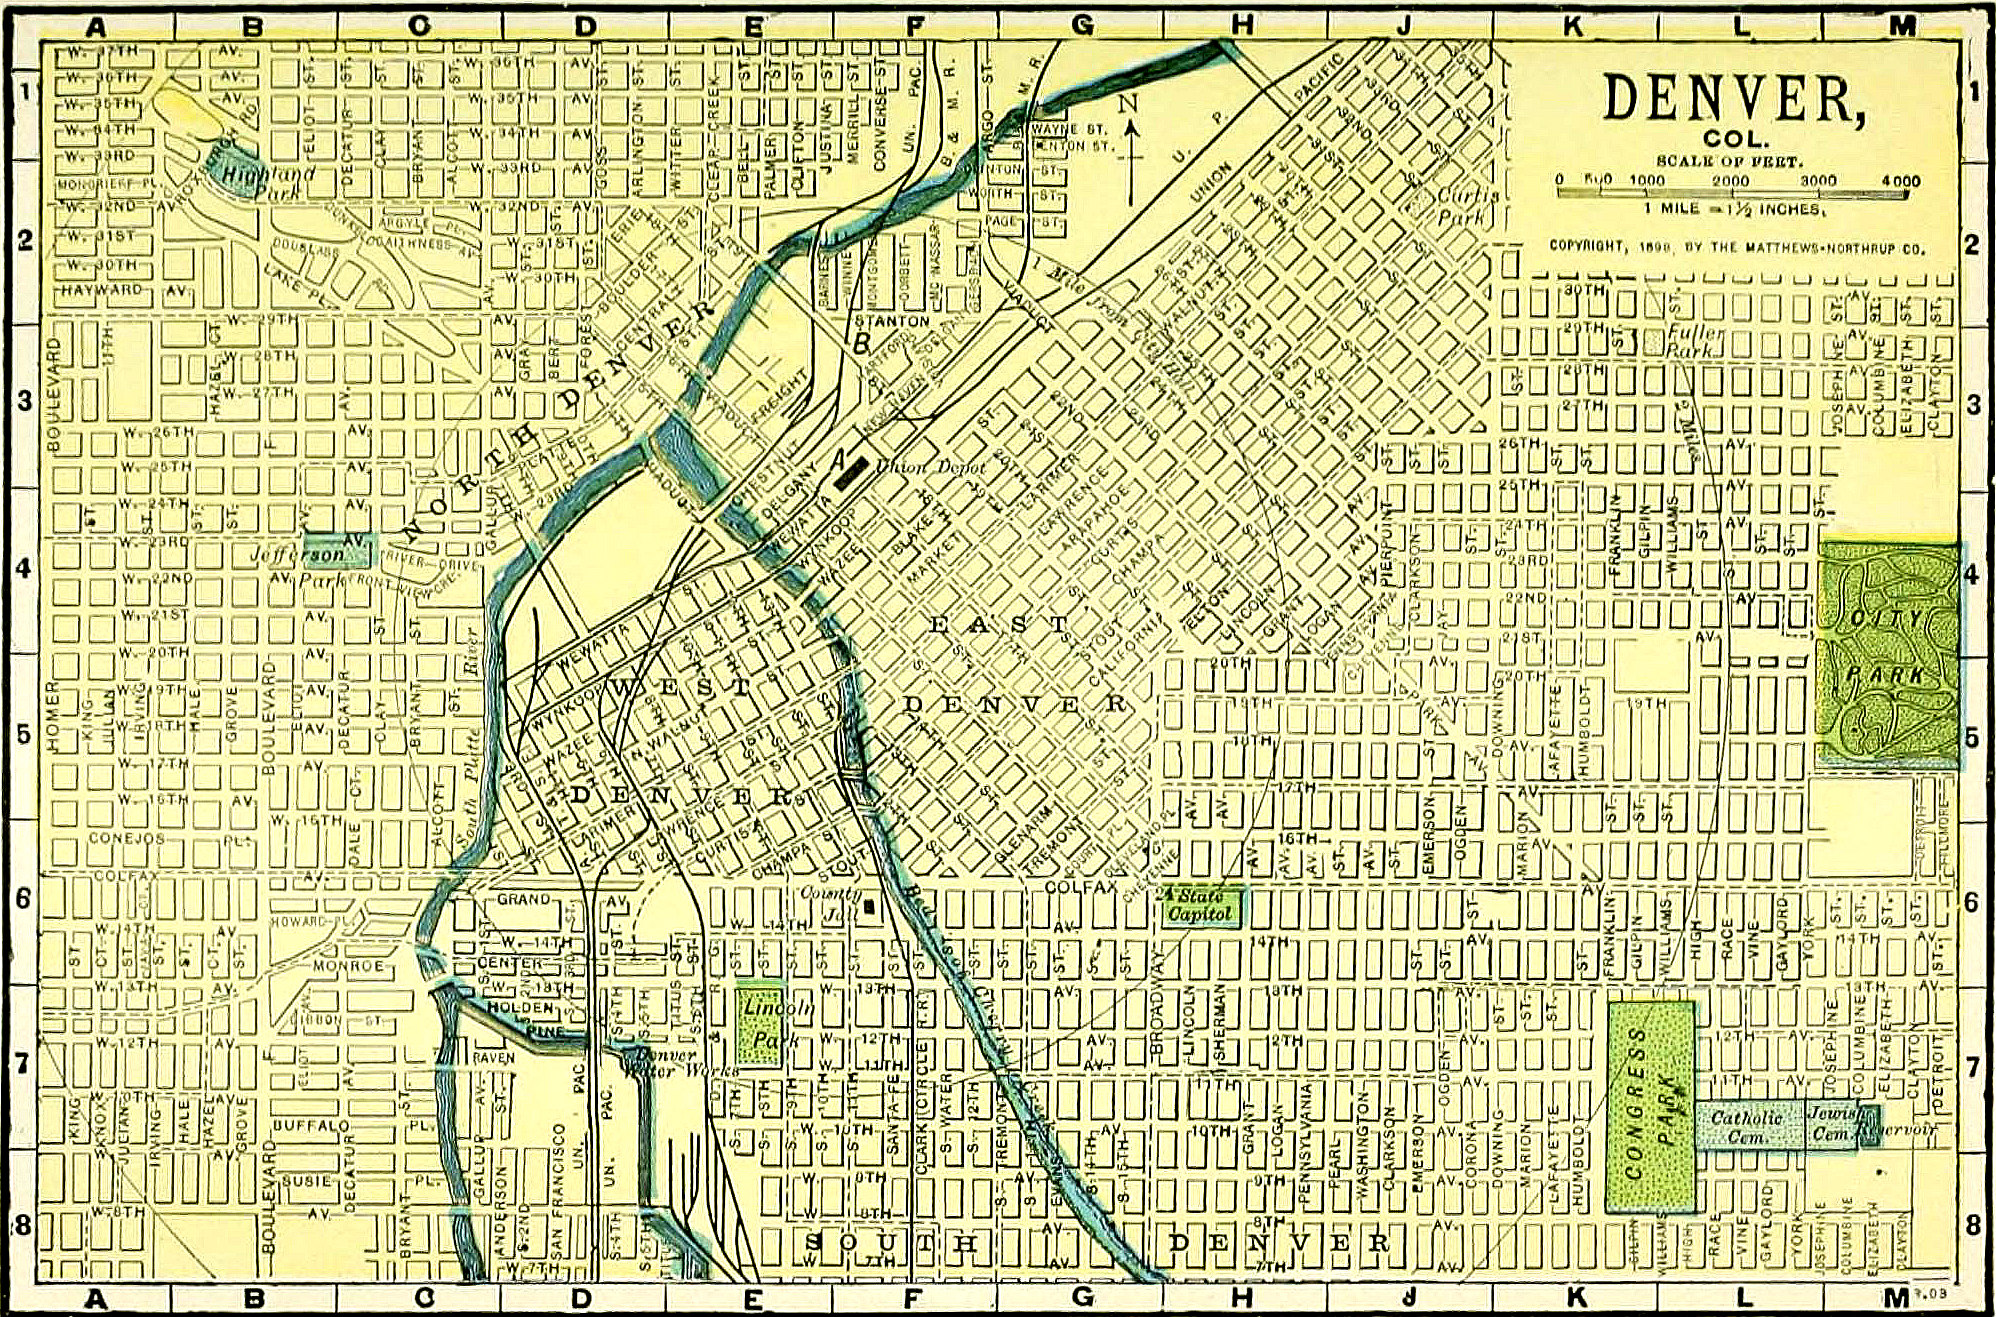 <p>A map showing Denver's street grid in 1898.</p>